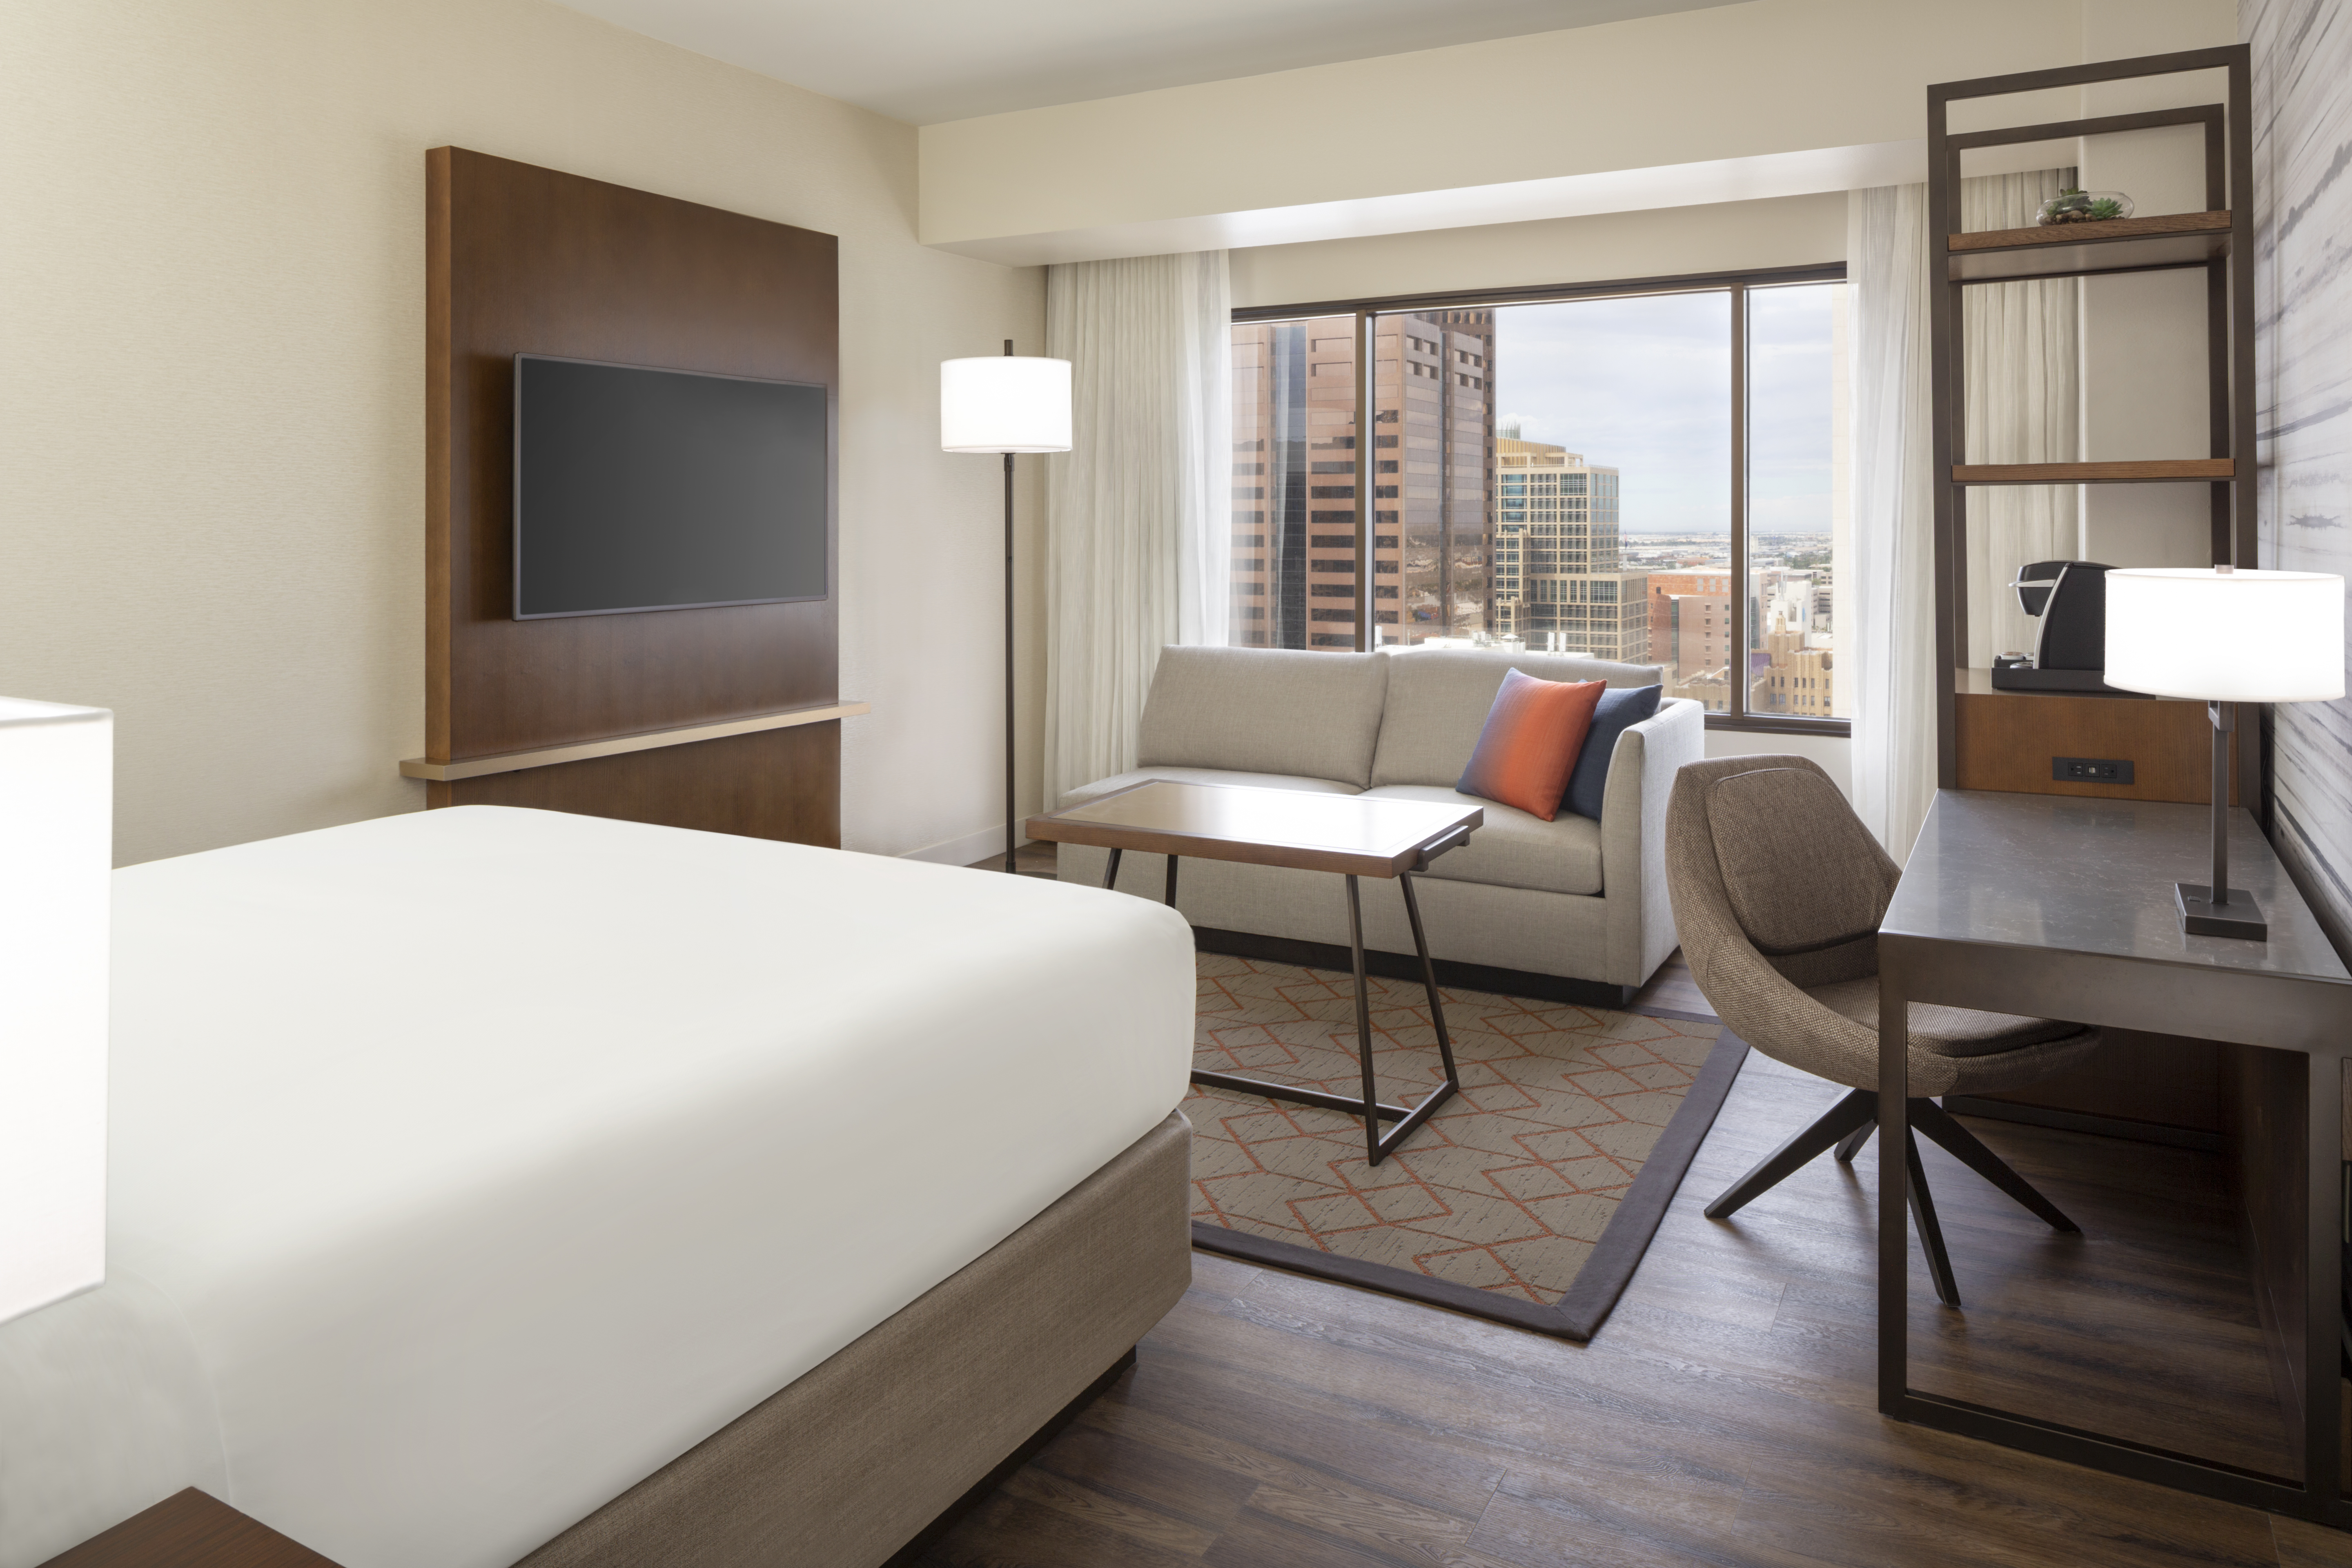 The hotel's 693 guestrooms now have an open-concept design.